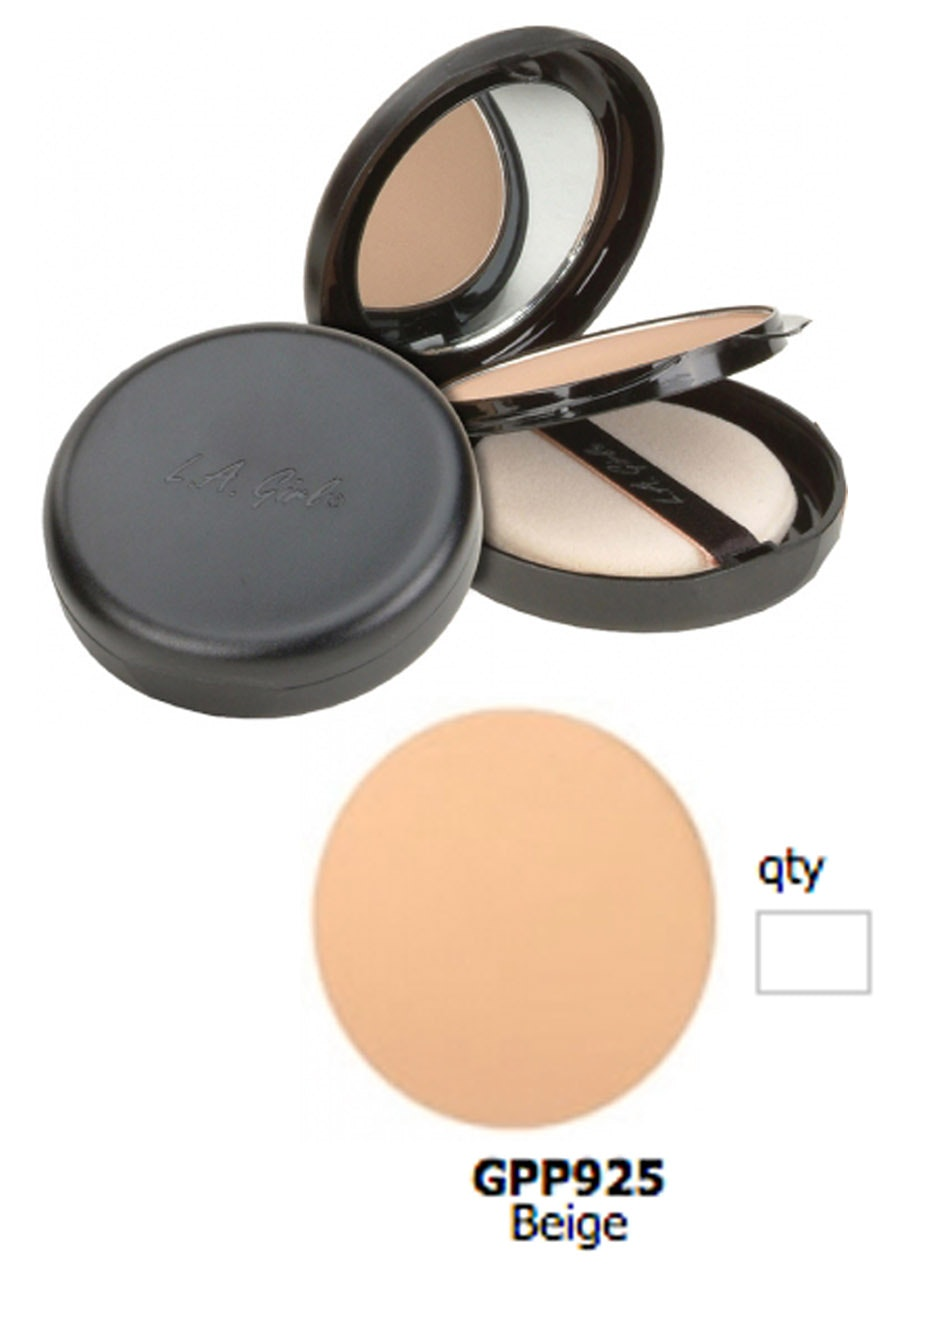 LA Girl Ultimate Pressed Powder - Beige